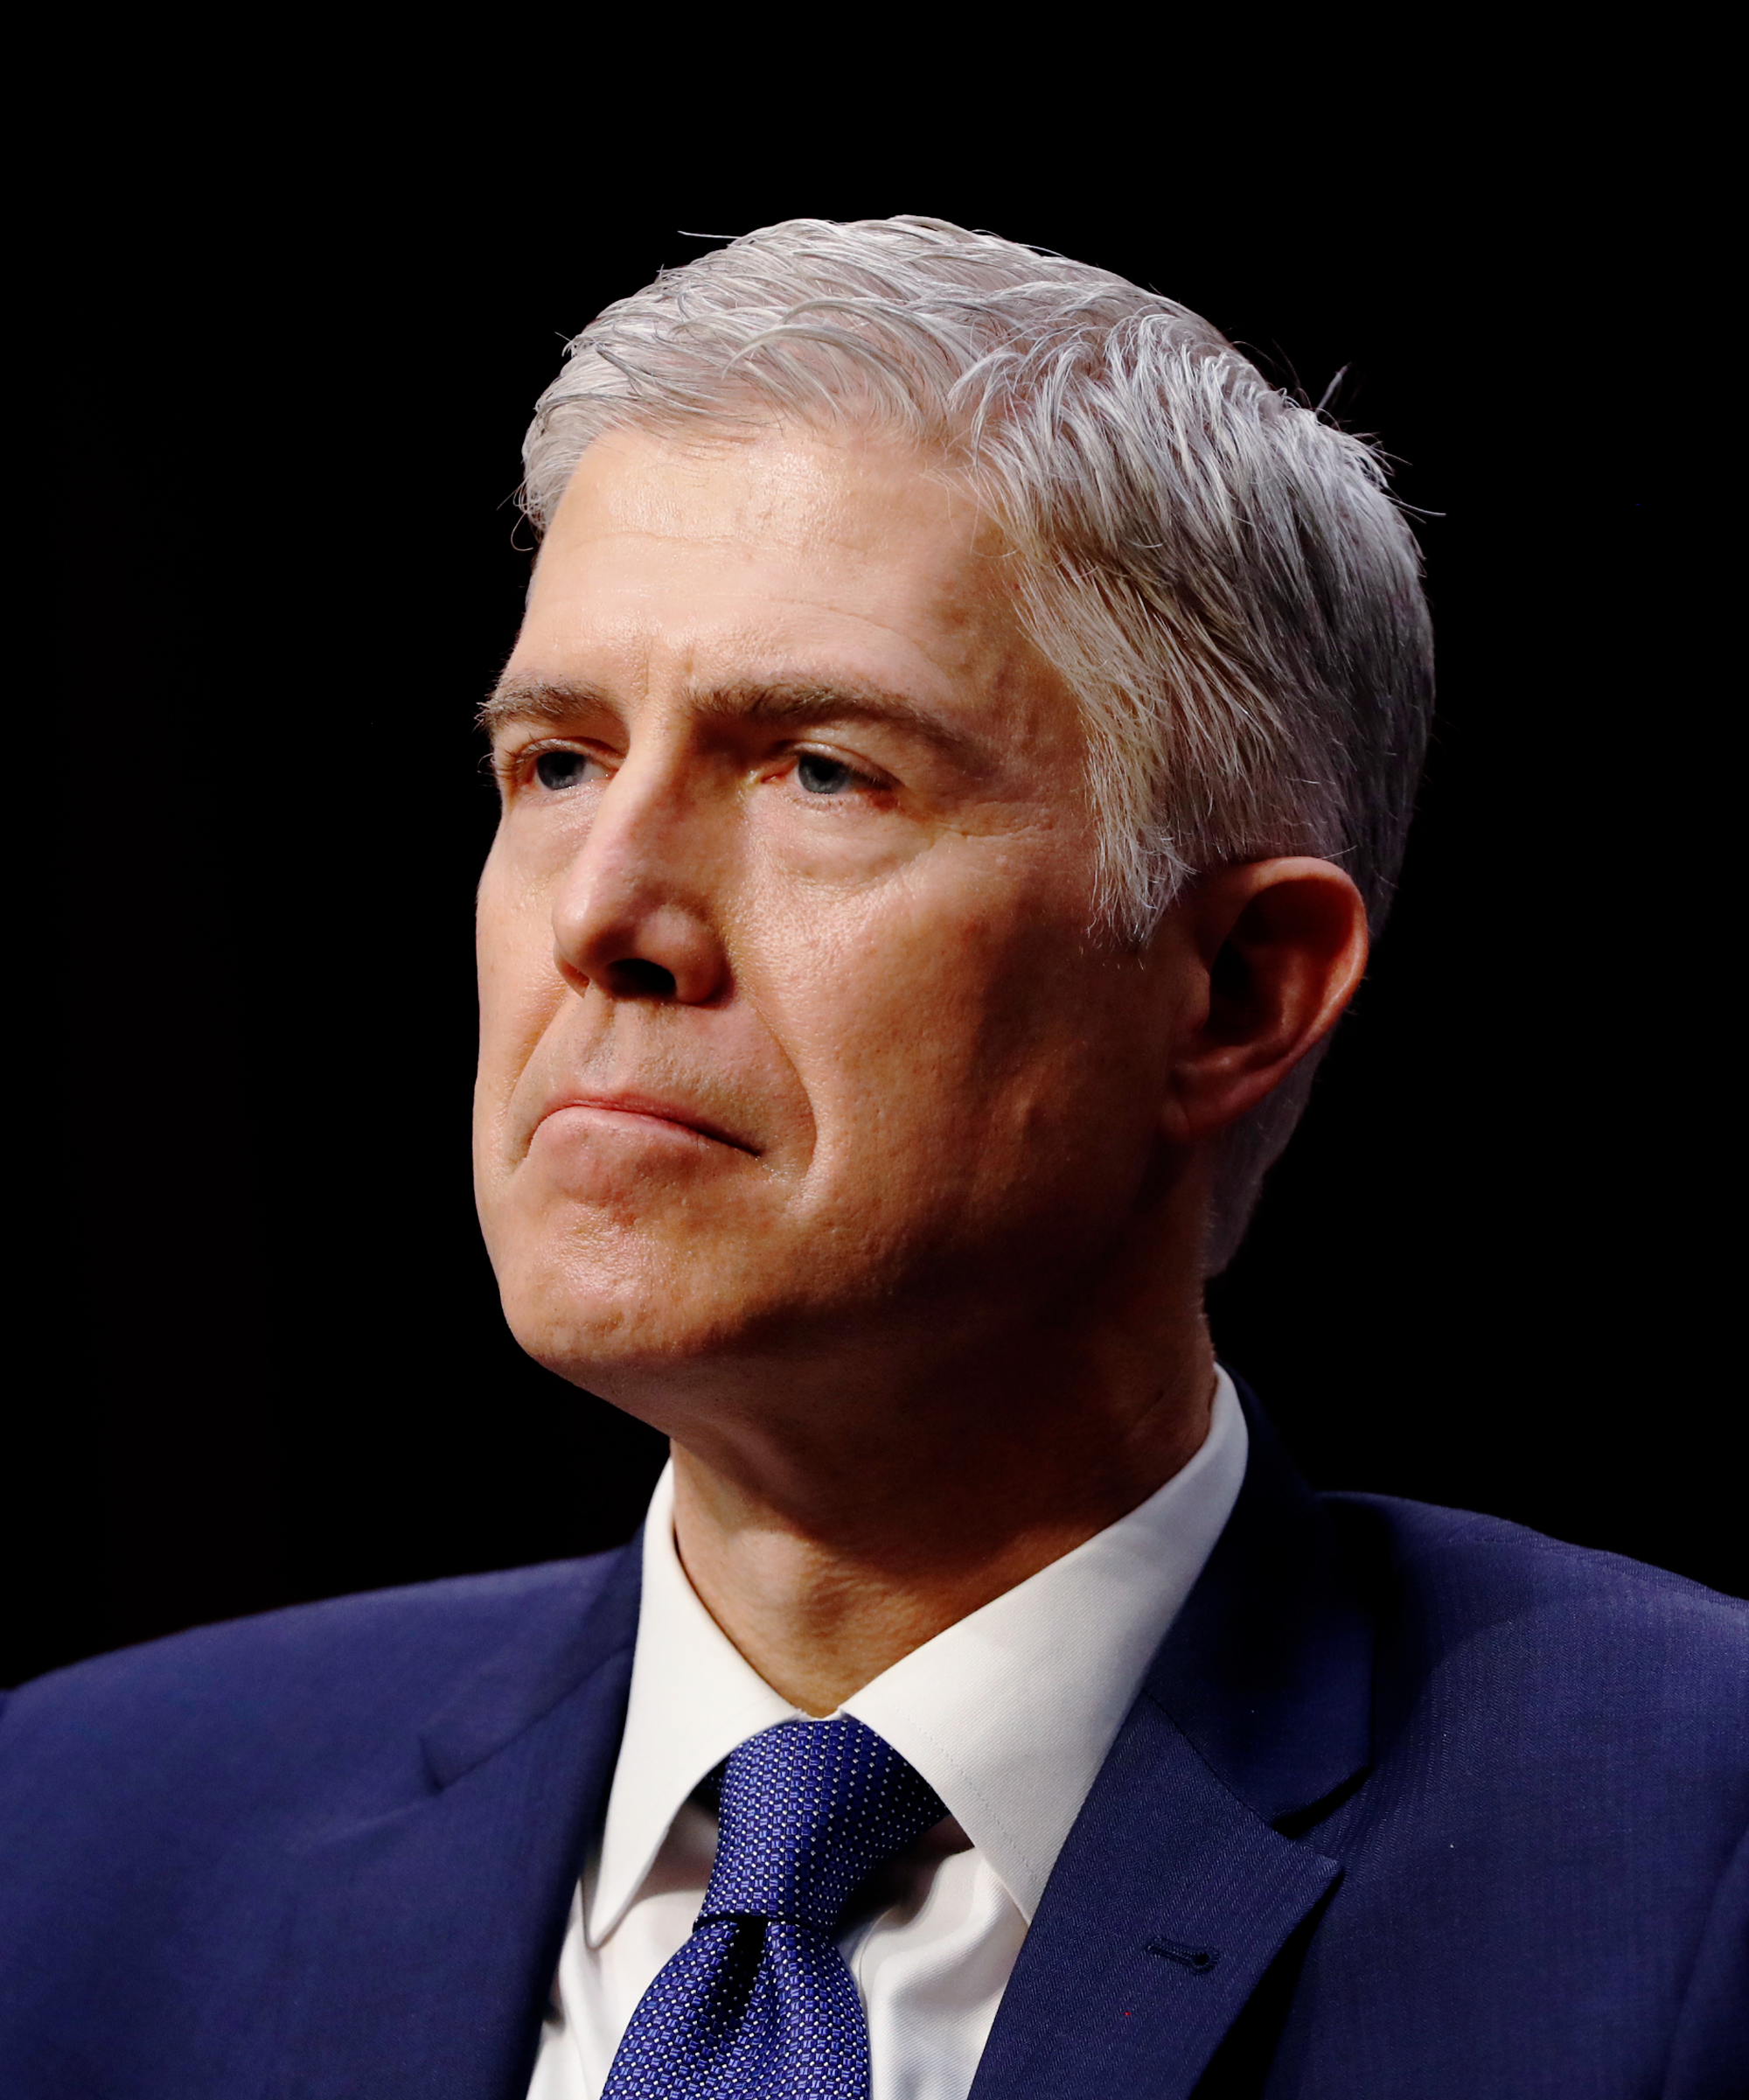 US Senate confirms Trump nominee Neil Gorsuch to the Supreme Court